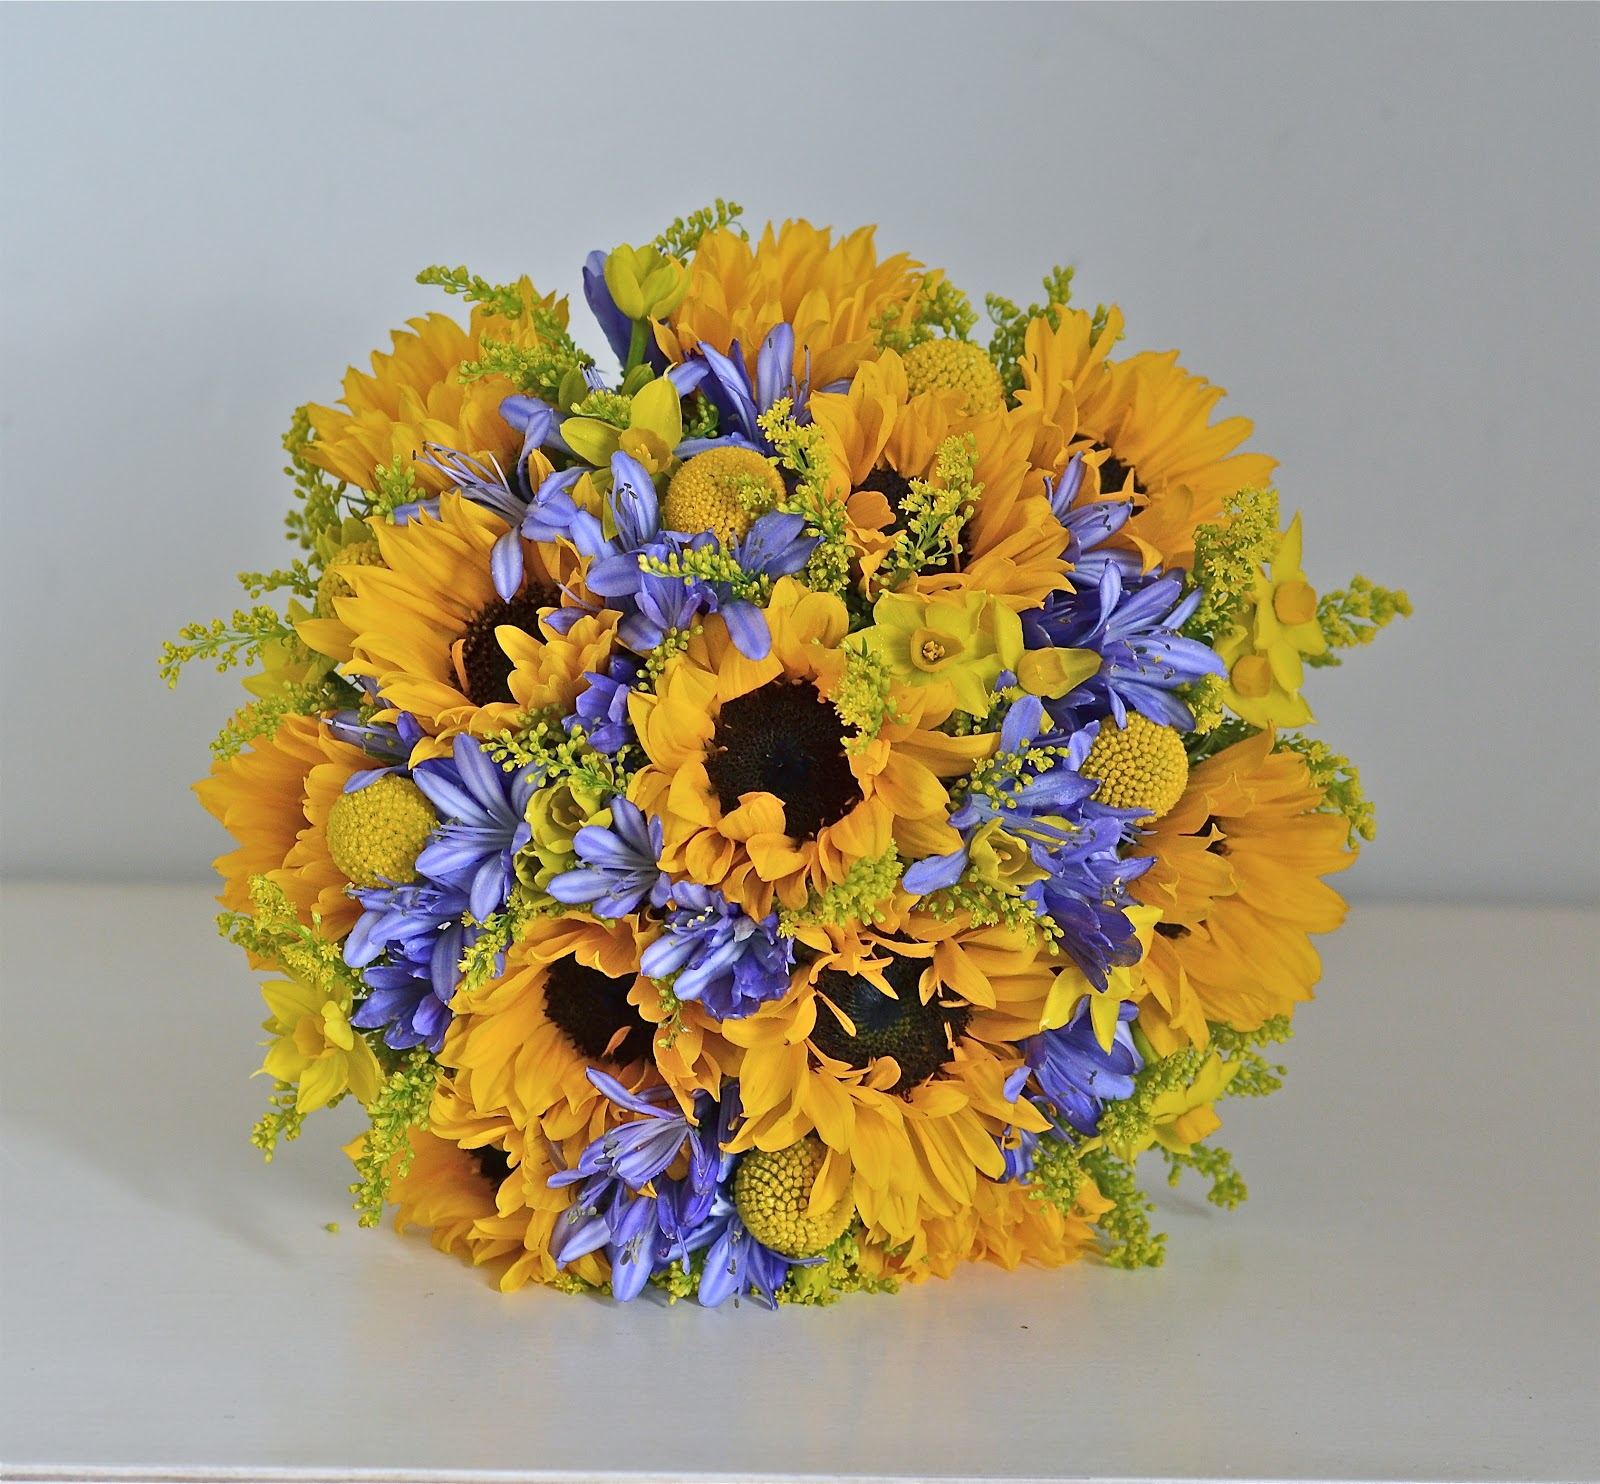 Wedding flowers blog emmas yellow and blue wedding flowers bouquet of sunflowers blue agapanthus mini narcissus craspedia and solidago for emma i used the mini sunflower here they are gorgeous but just one mightylinksfo